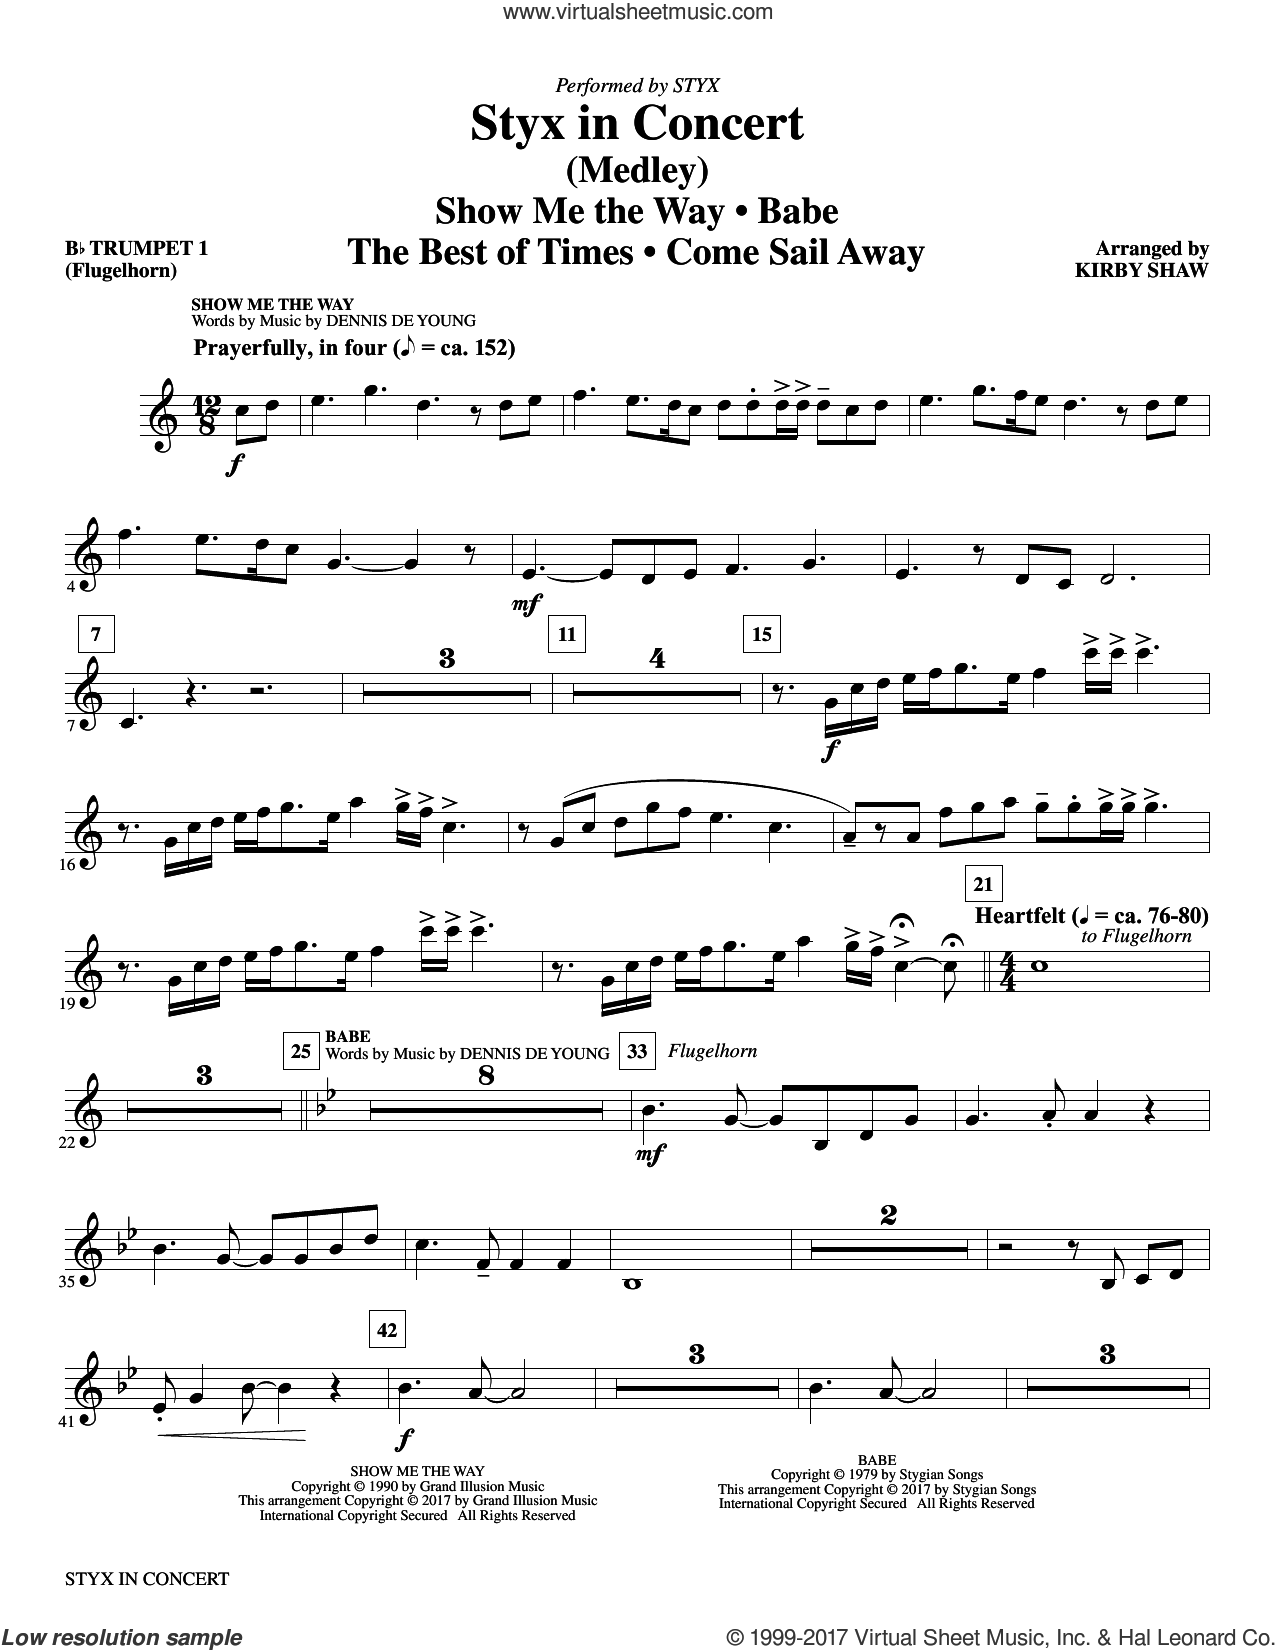 Styx in Concert (complete set of parts) sheet music for orchestra/band by Kirby Shaw, Dennis DeYoung and Styx, intermediate skill level